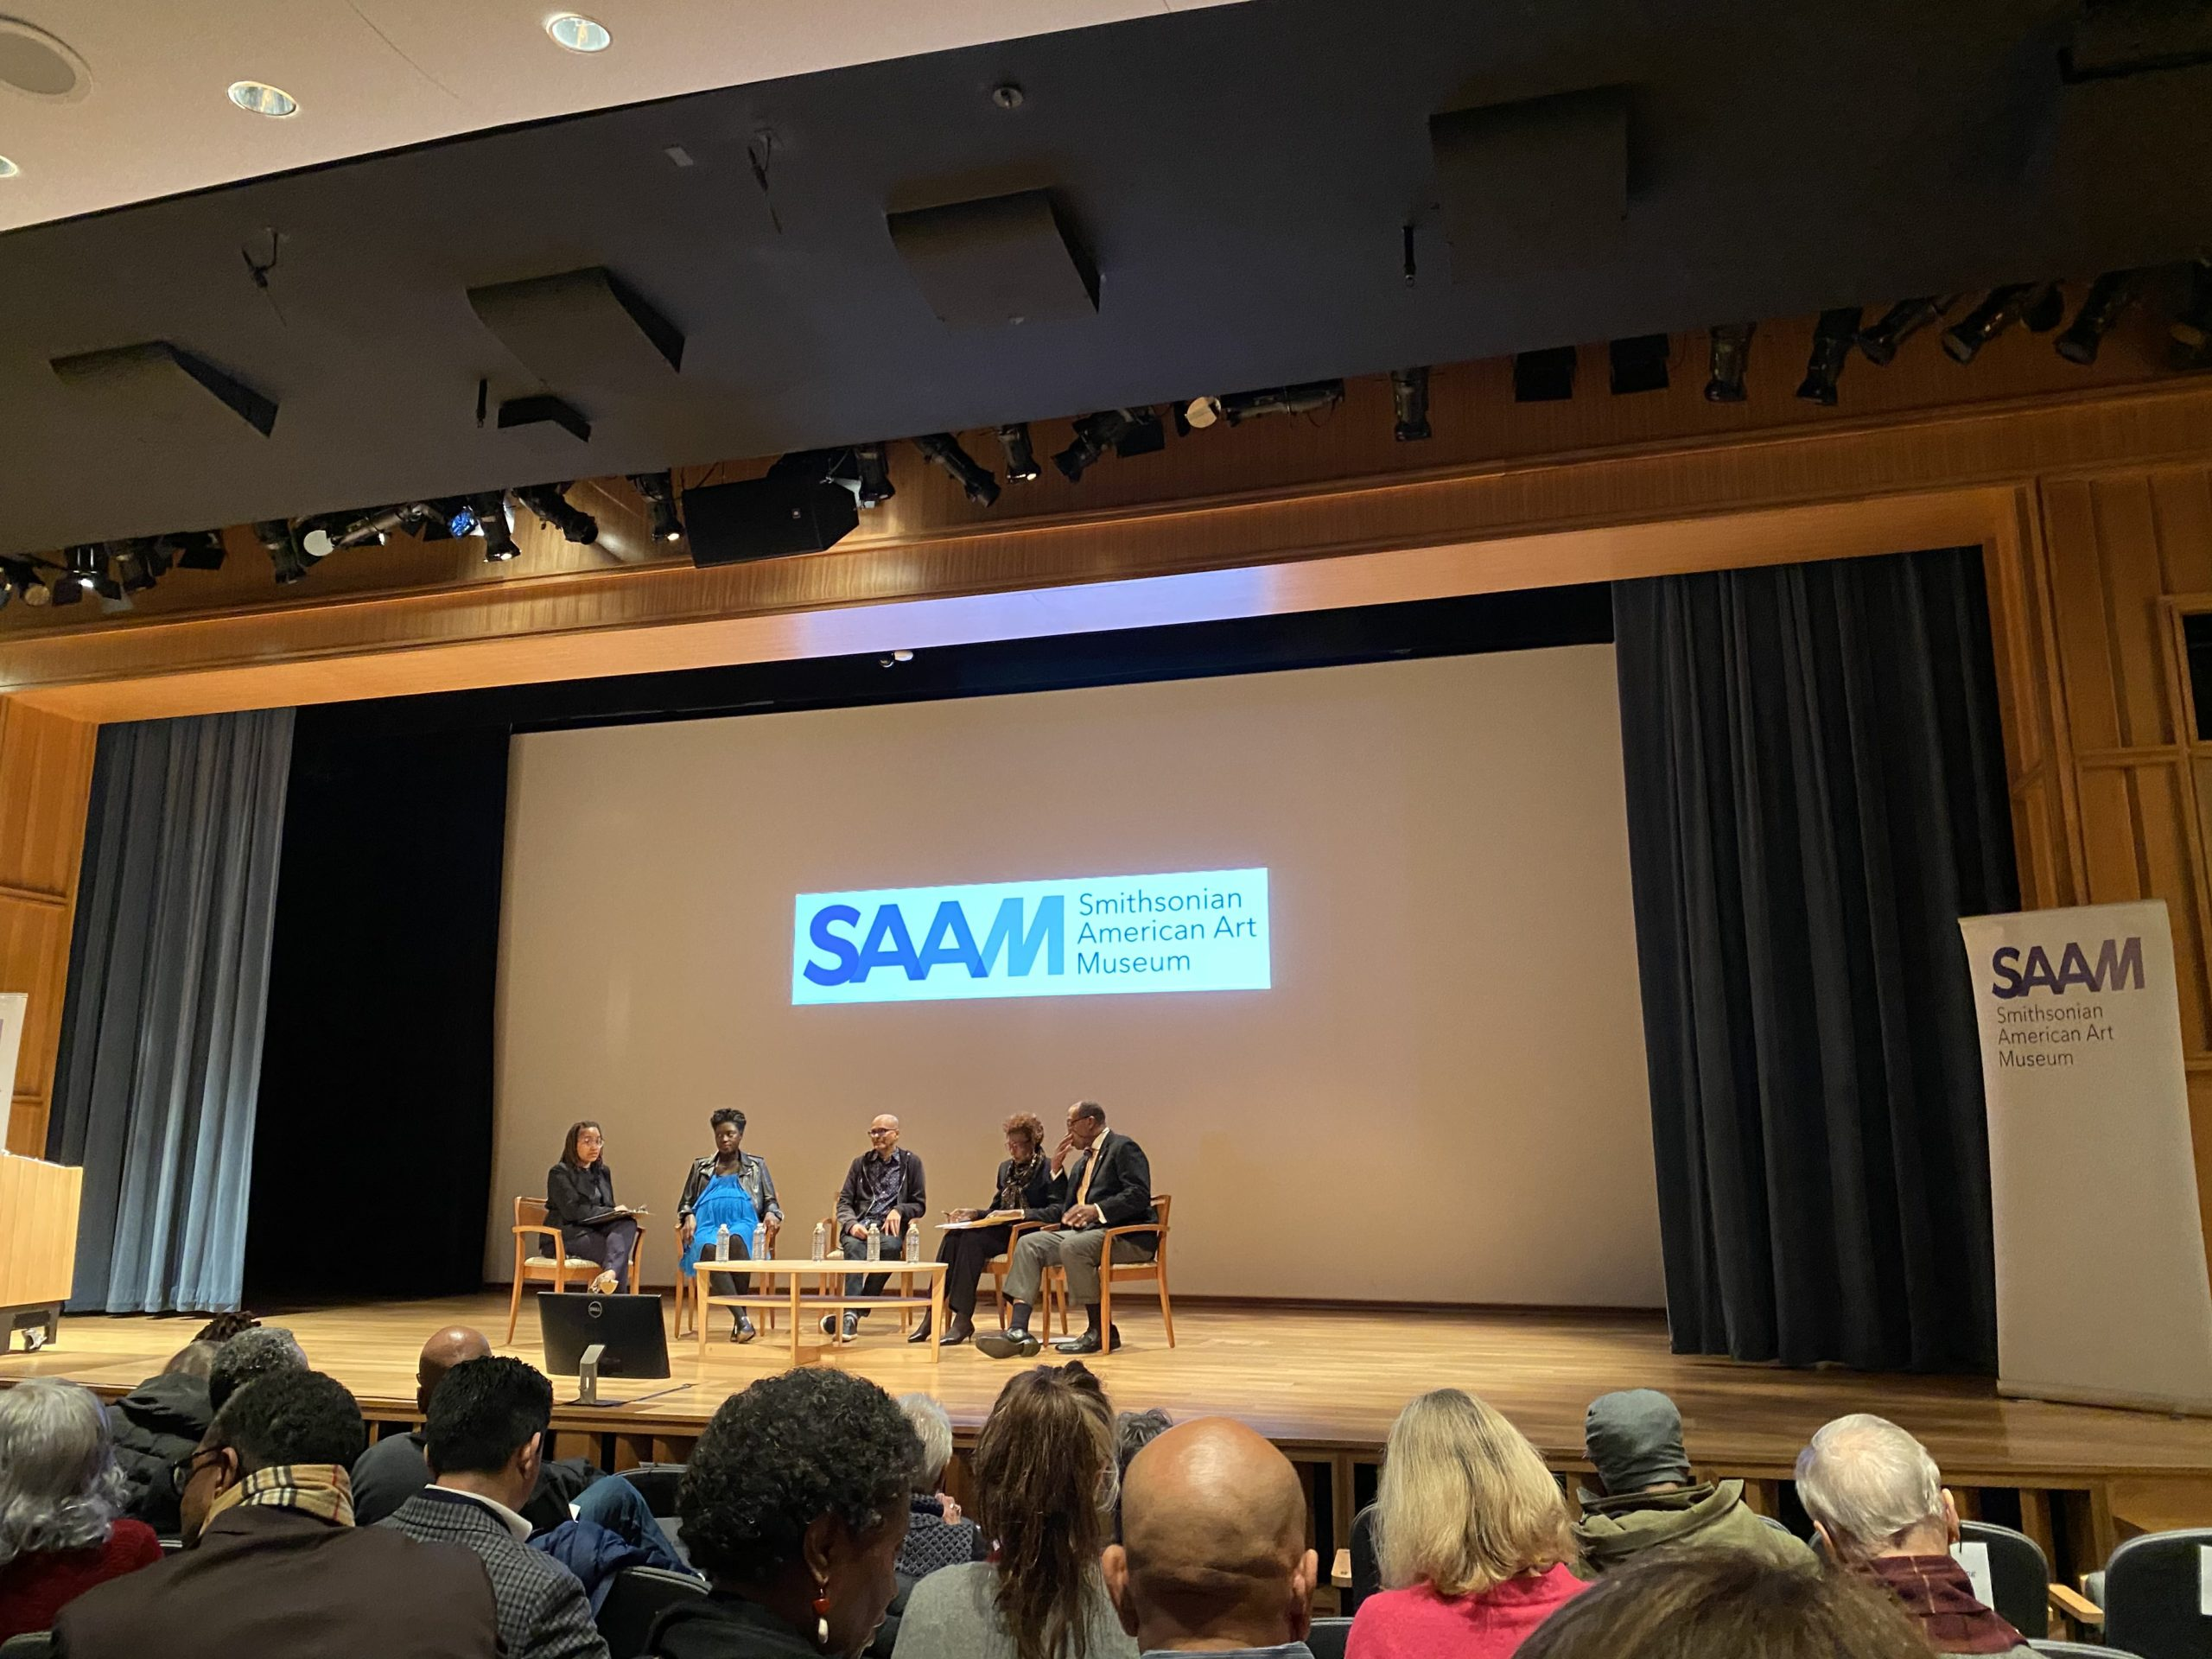 Smithsonian American Art Museum Host Panel Calls For the Collection Of More Black Art